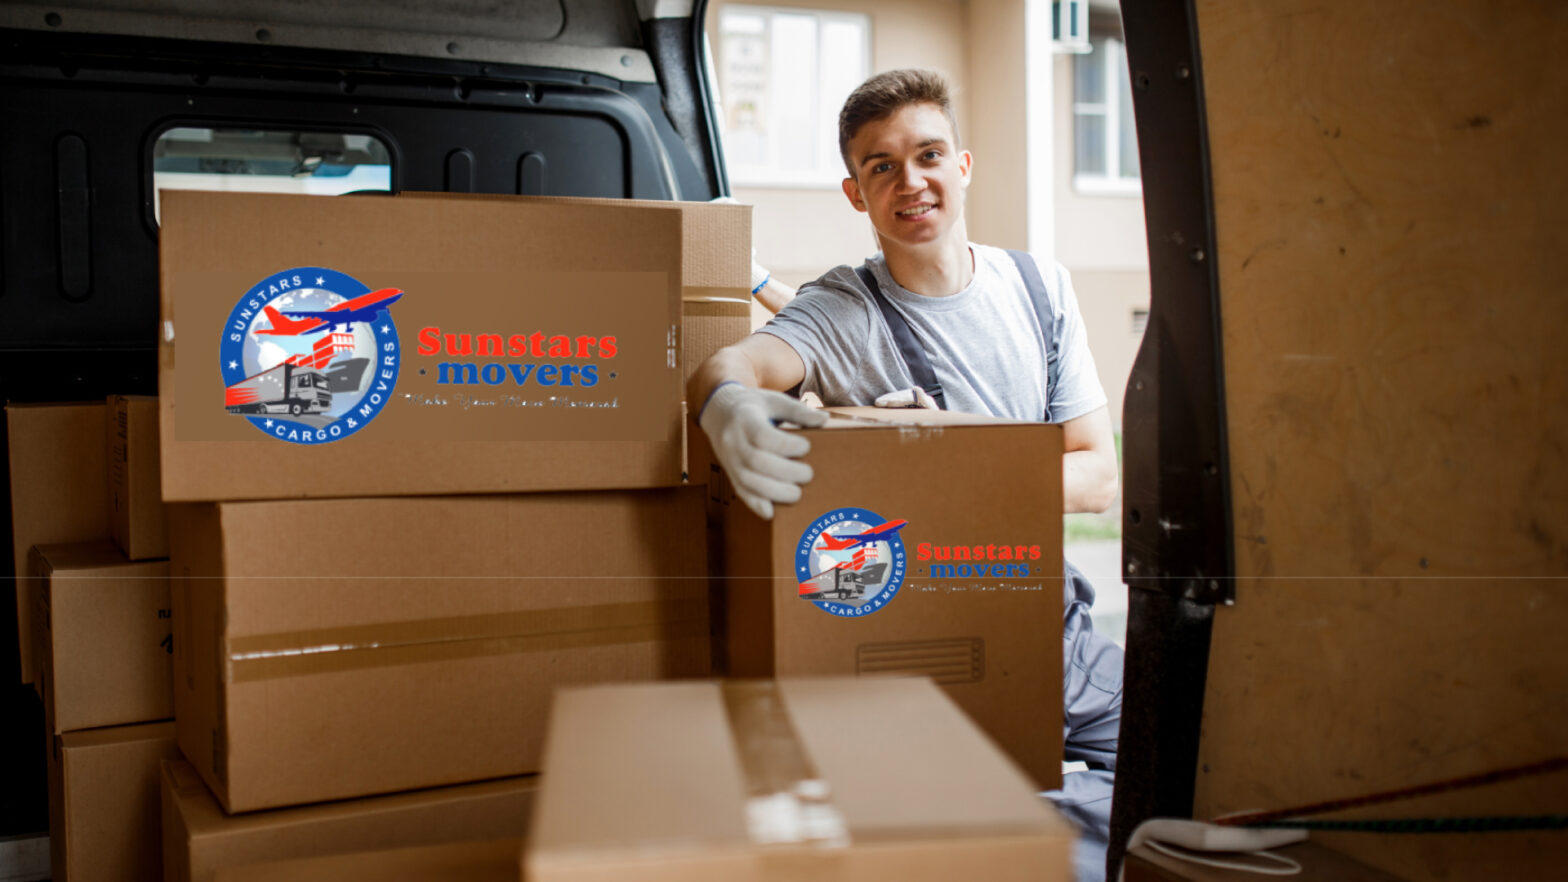 Best movers in Ajman – Sunstars Movers